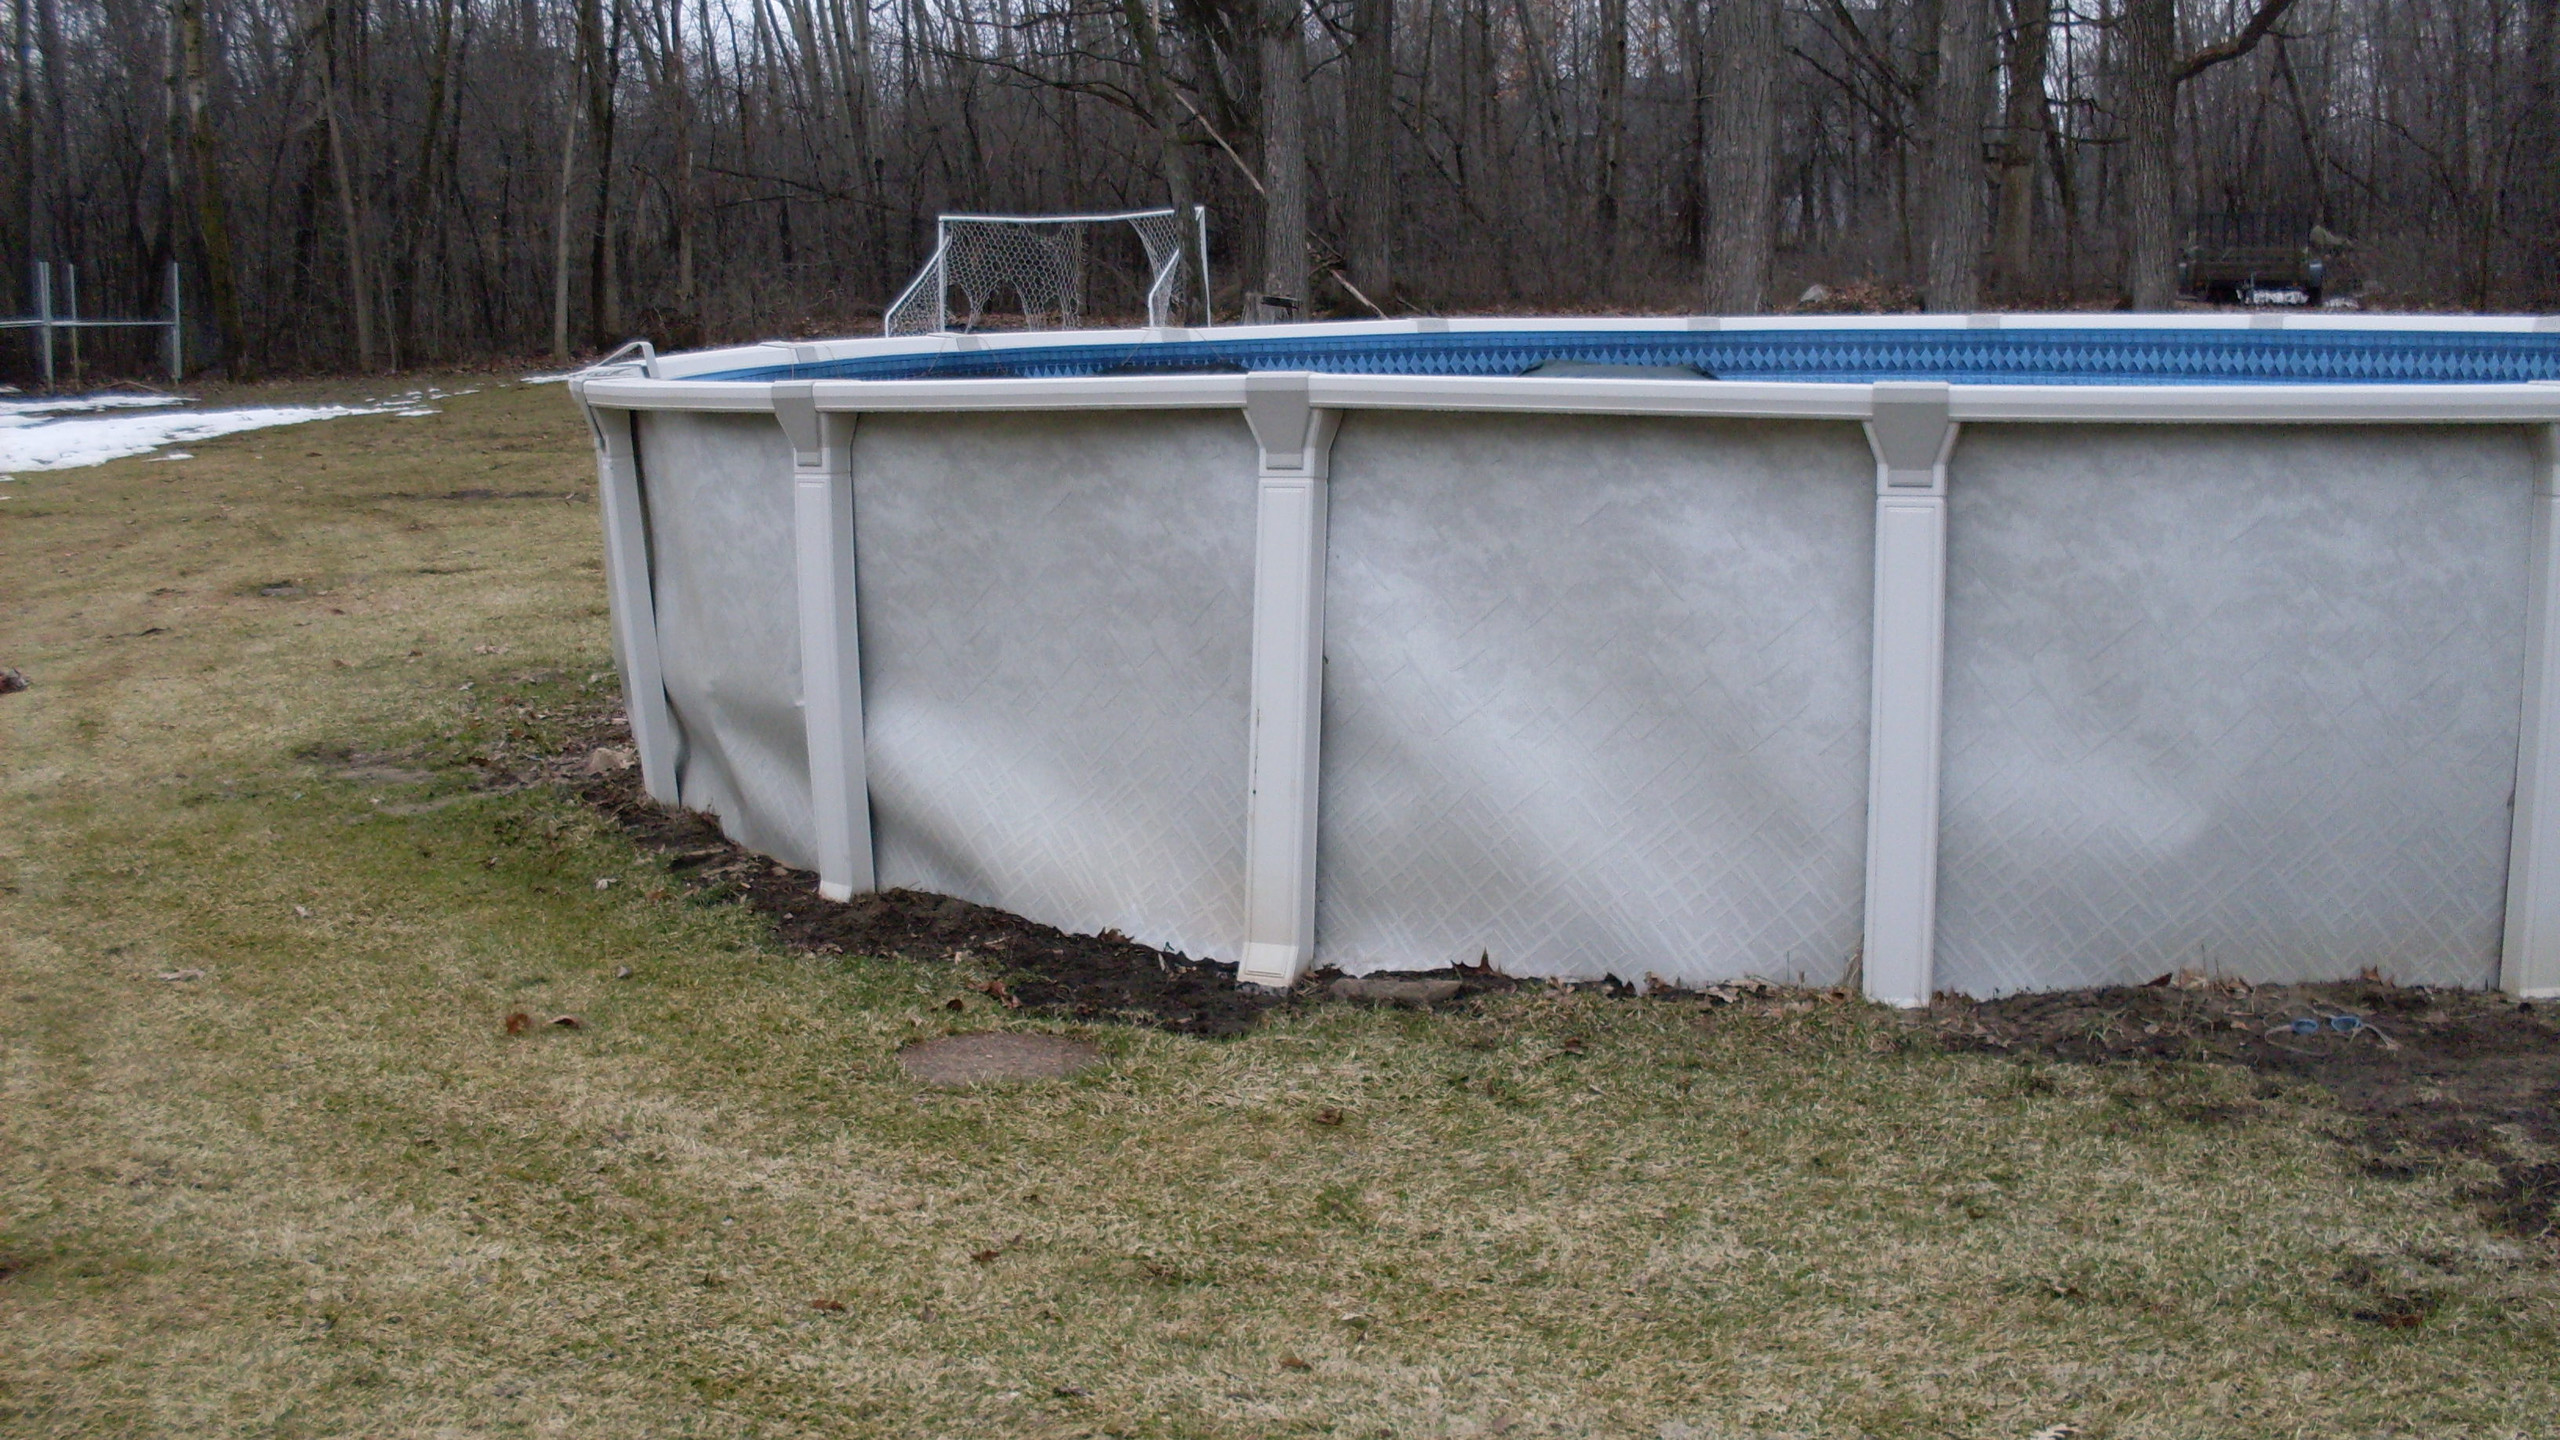 This is an Aqualeader Above Ground Pool sold and installed by Allied Pools in Appleton WI. This pool suffered a complete failure due to heaving patio blocks under the bottom track of the pool. This pool was not repairable and had to be replaced.